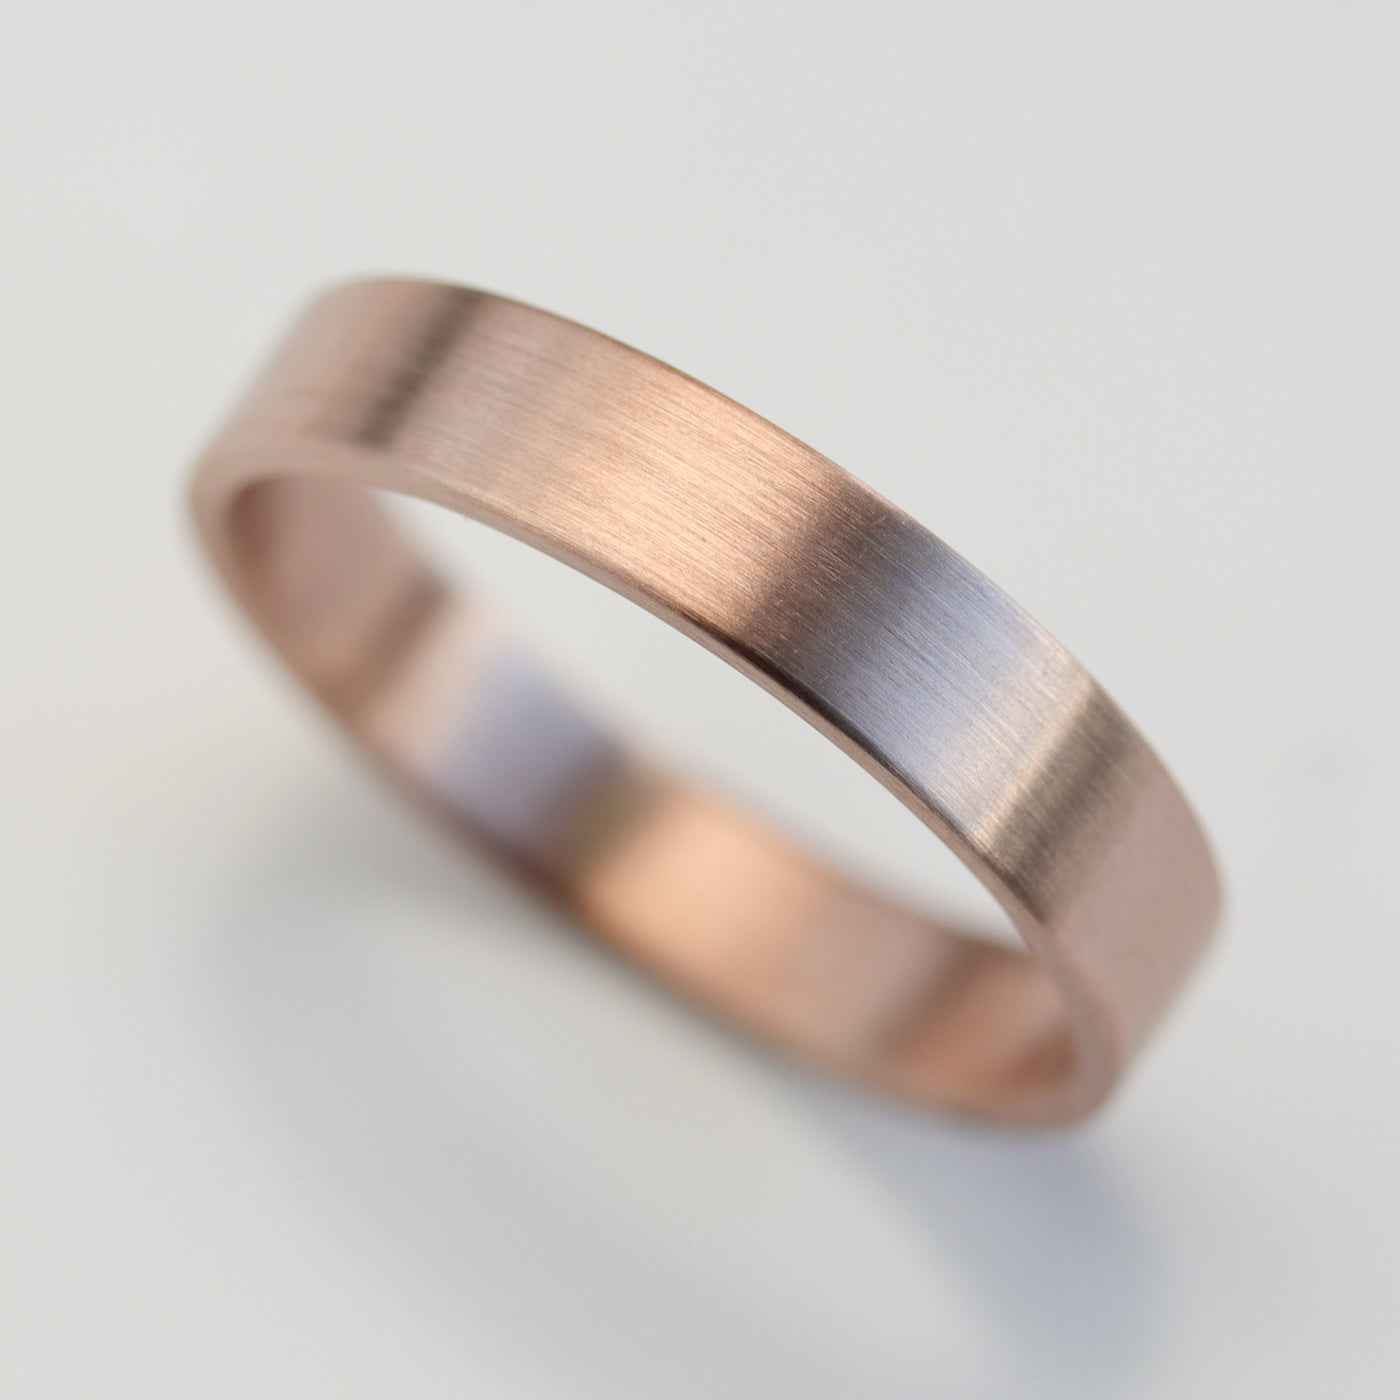 Size 7.5 - 14k Rose Gold 4x1.25mm Flat Band